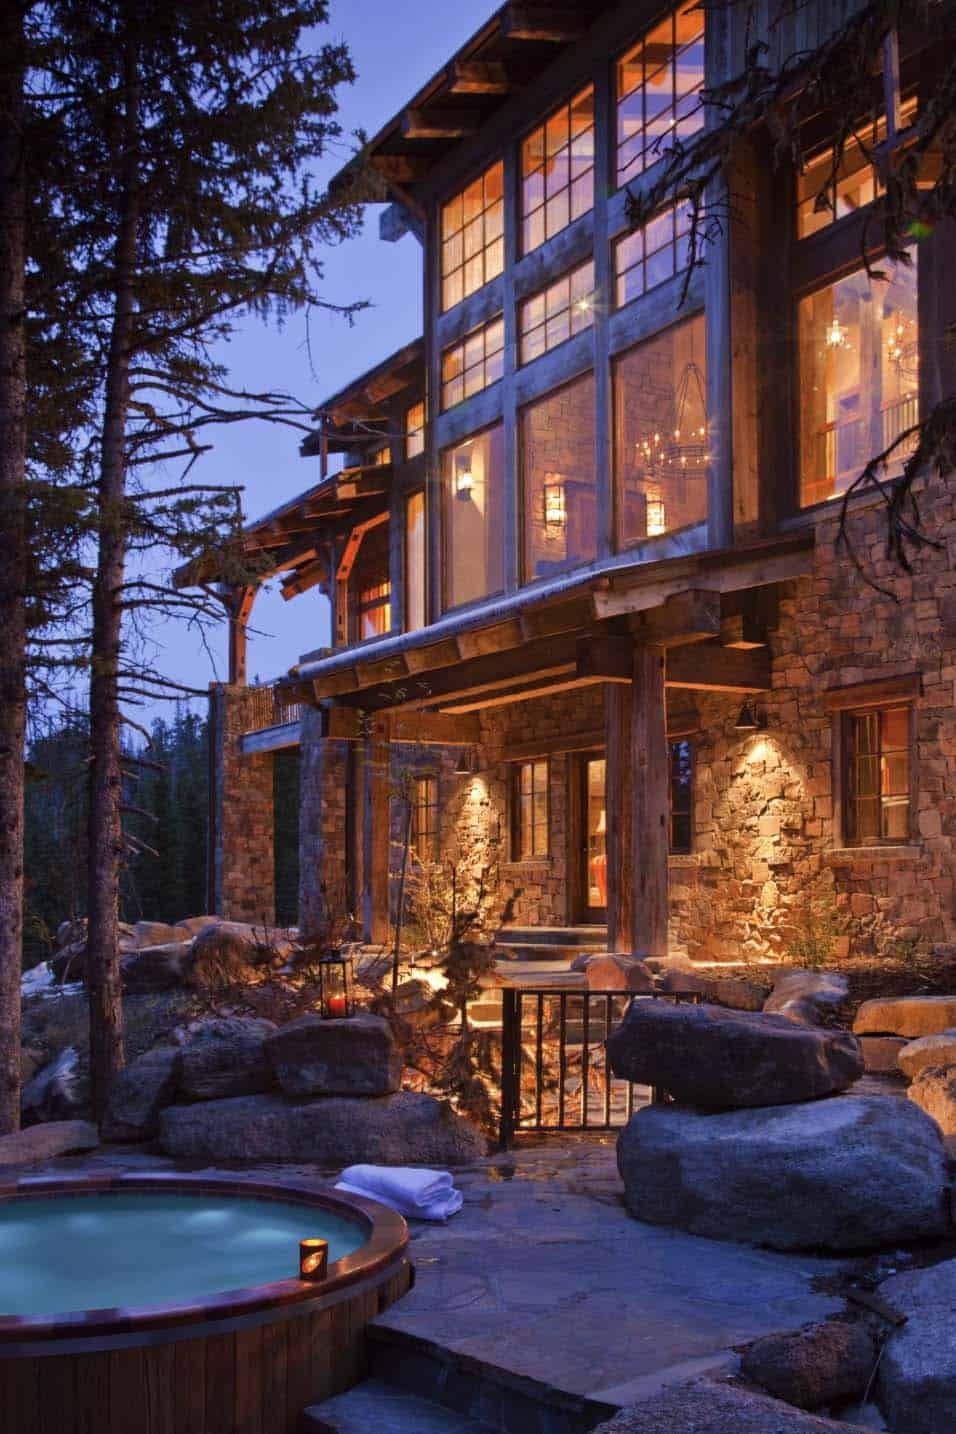 Cozy Mountain Hideaway With Charming Modern Rustic Style